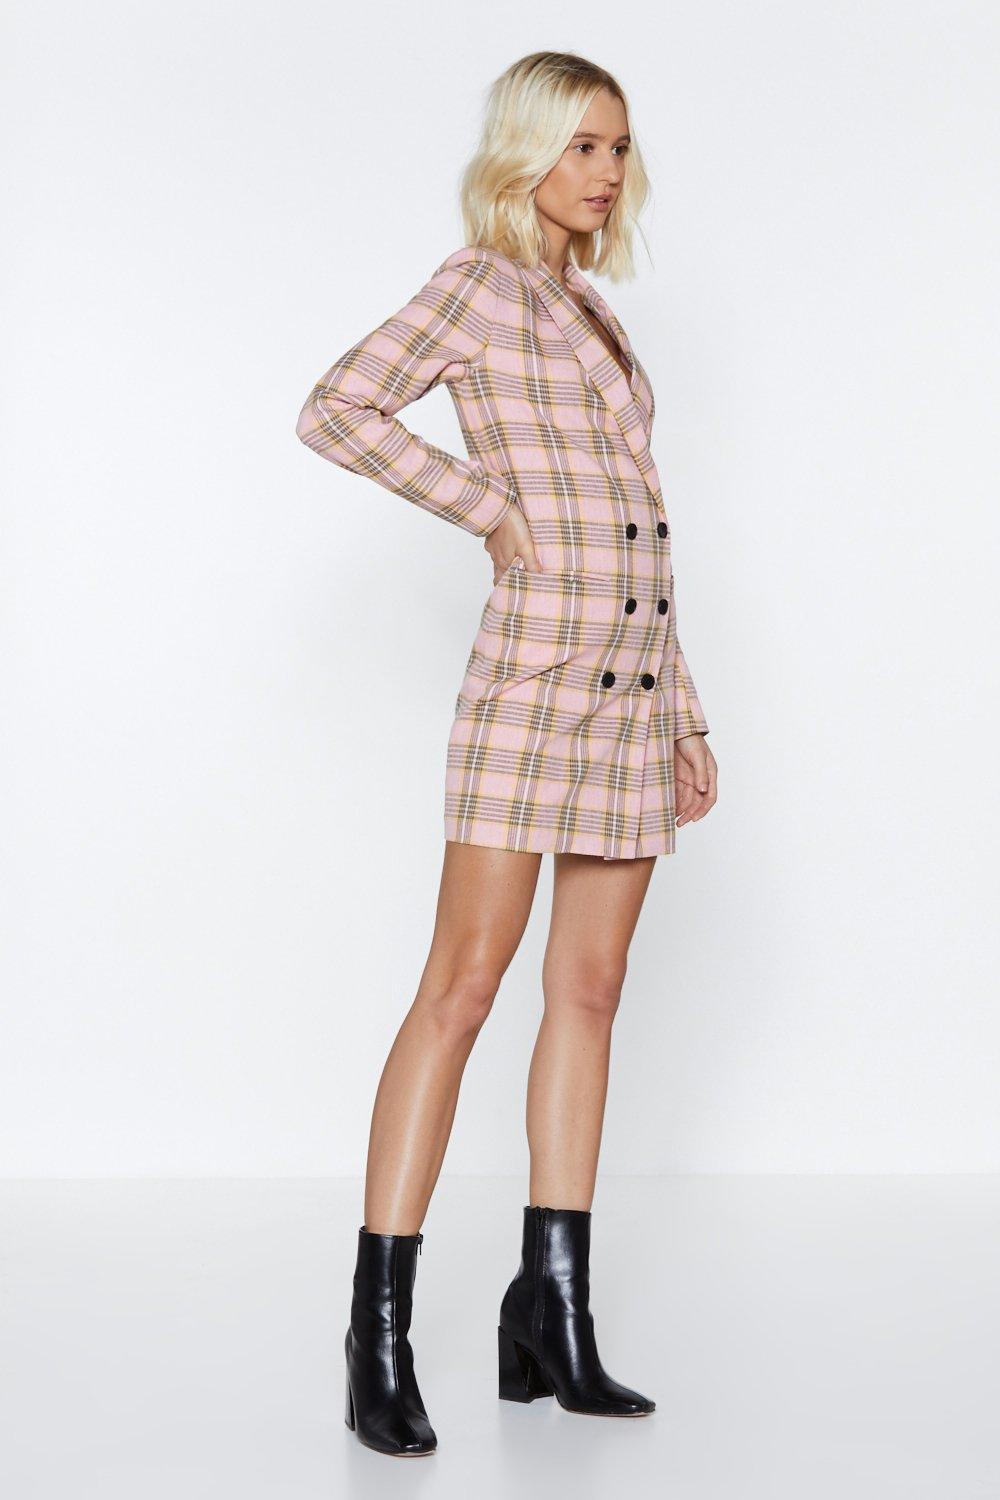 ef5abf46cf9e7 Plaid Decisions Blazer Dress | Shop Clothes at Nasty Gal!